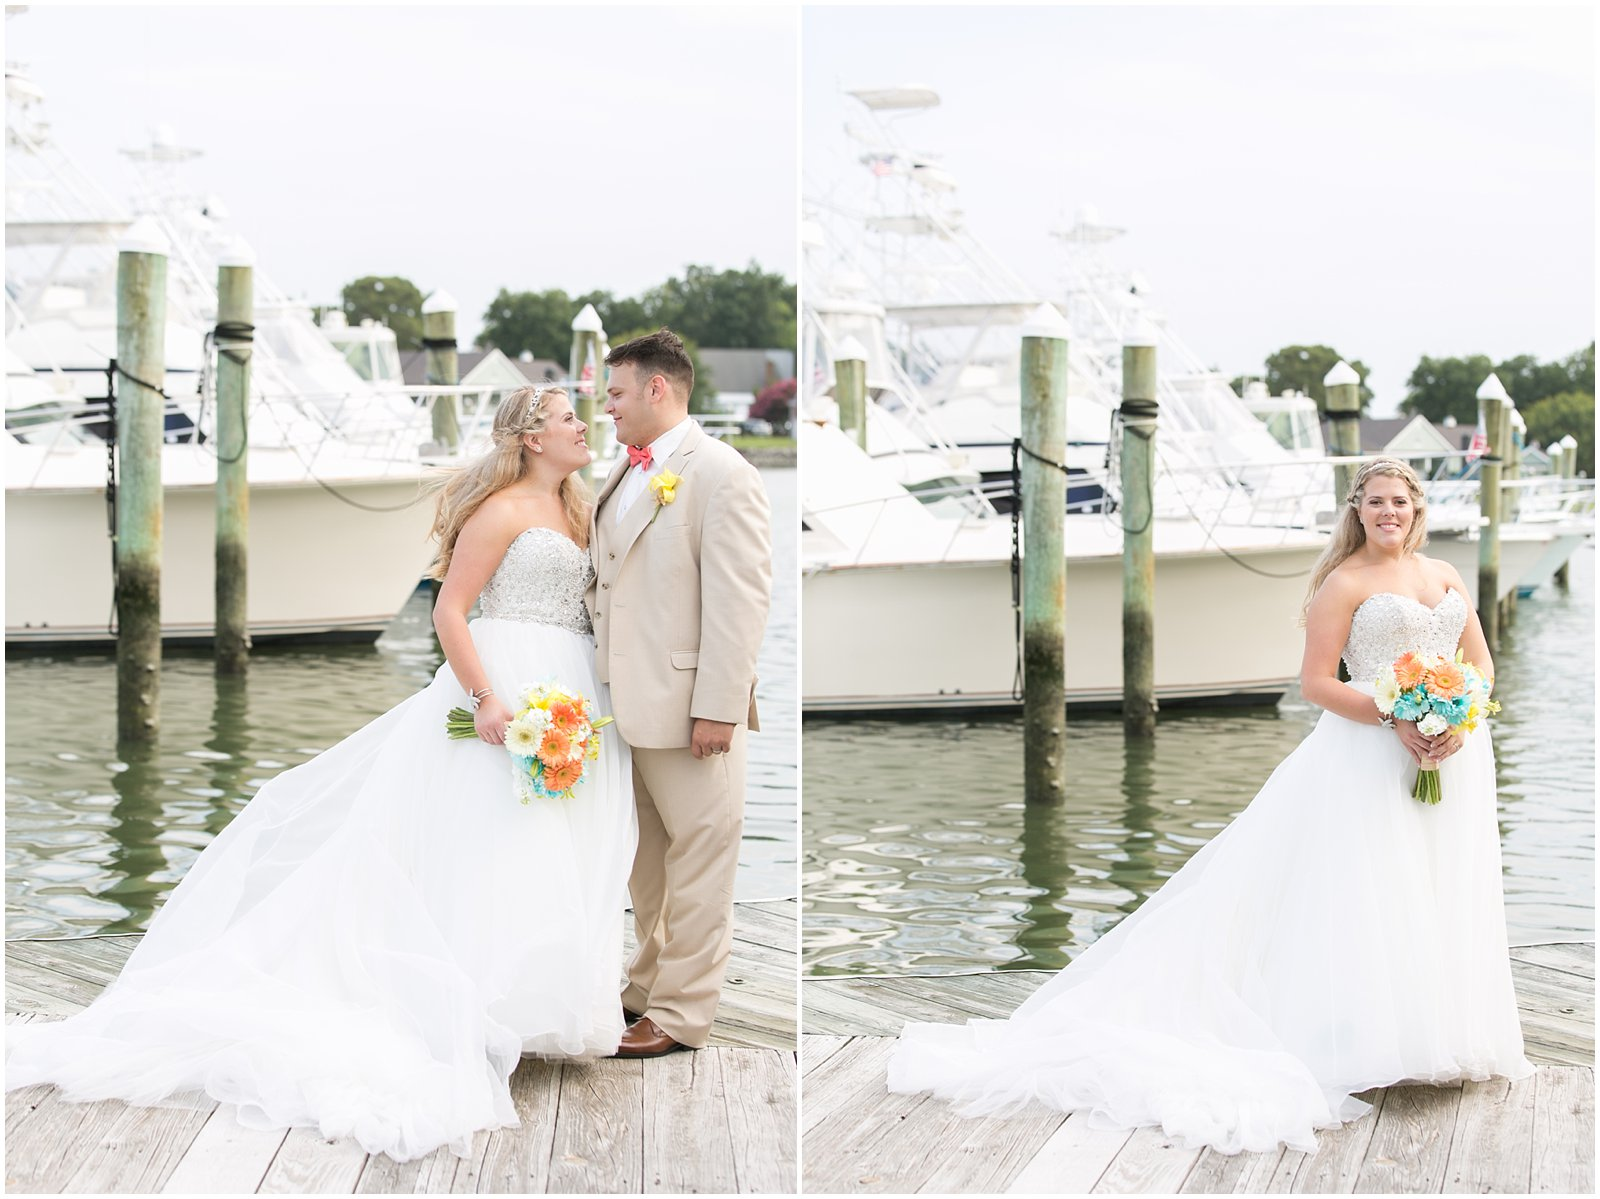 jessica_ryan_photography_wedding_virginia_beach_virginia_wedding_photographer_candid_wedding_photography_lifestyle_photojournalistic_real_moments_0111